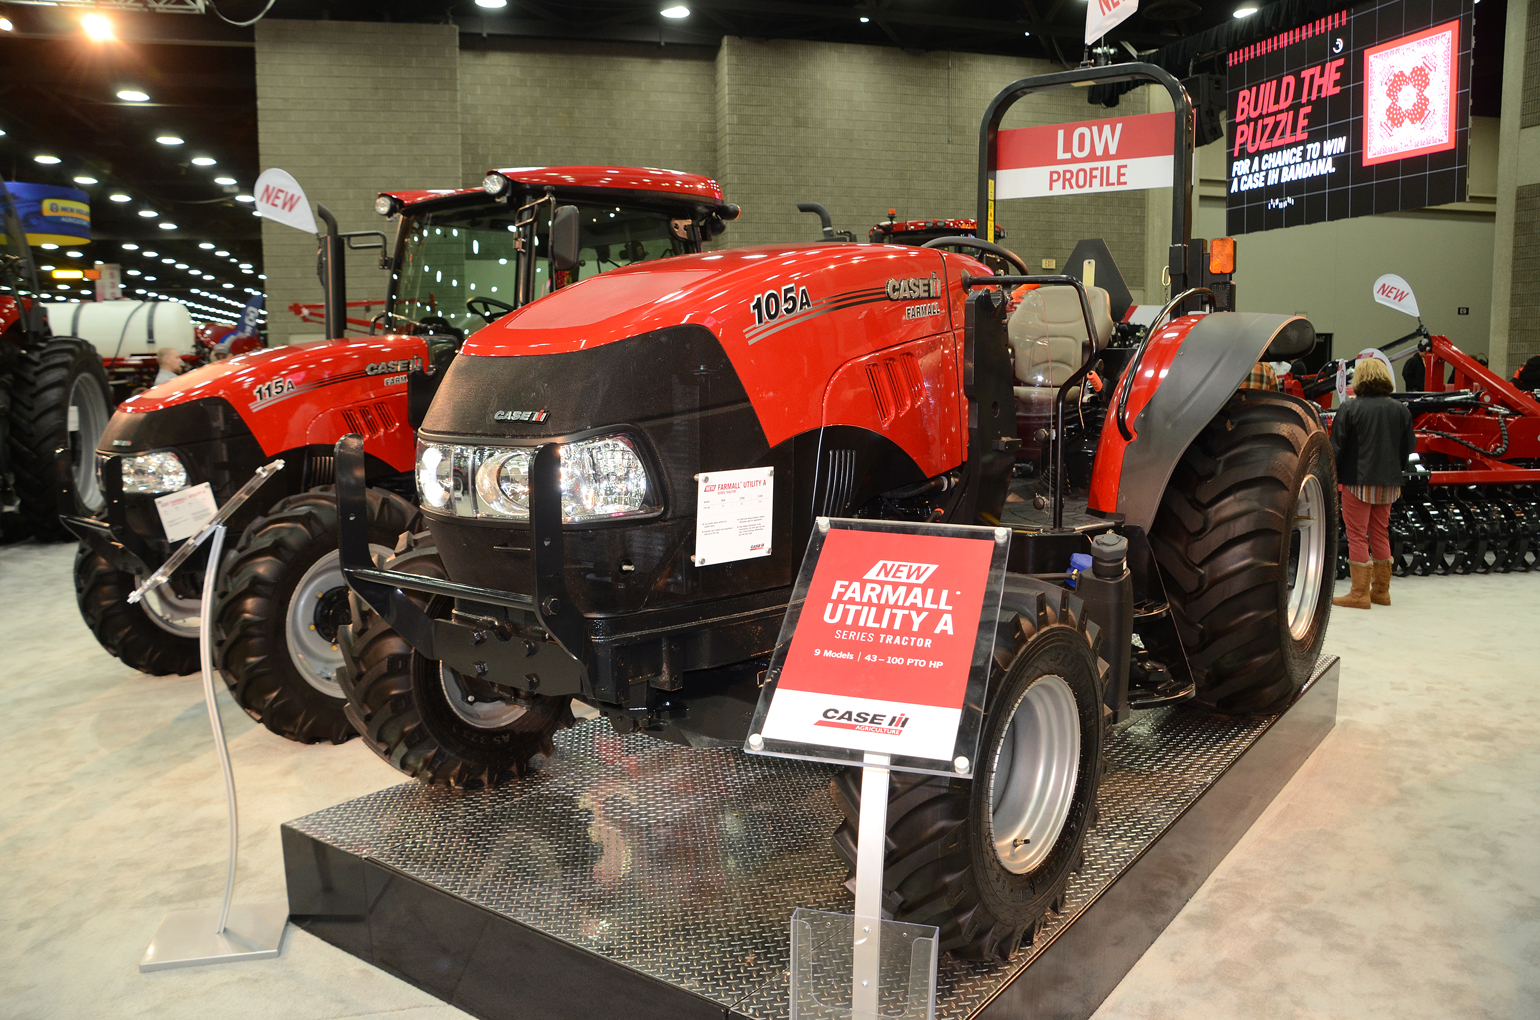 low profile version of the Farmall A launched at National Farm Machinery Show